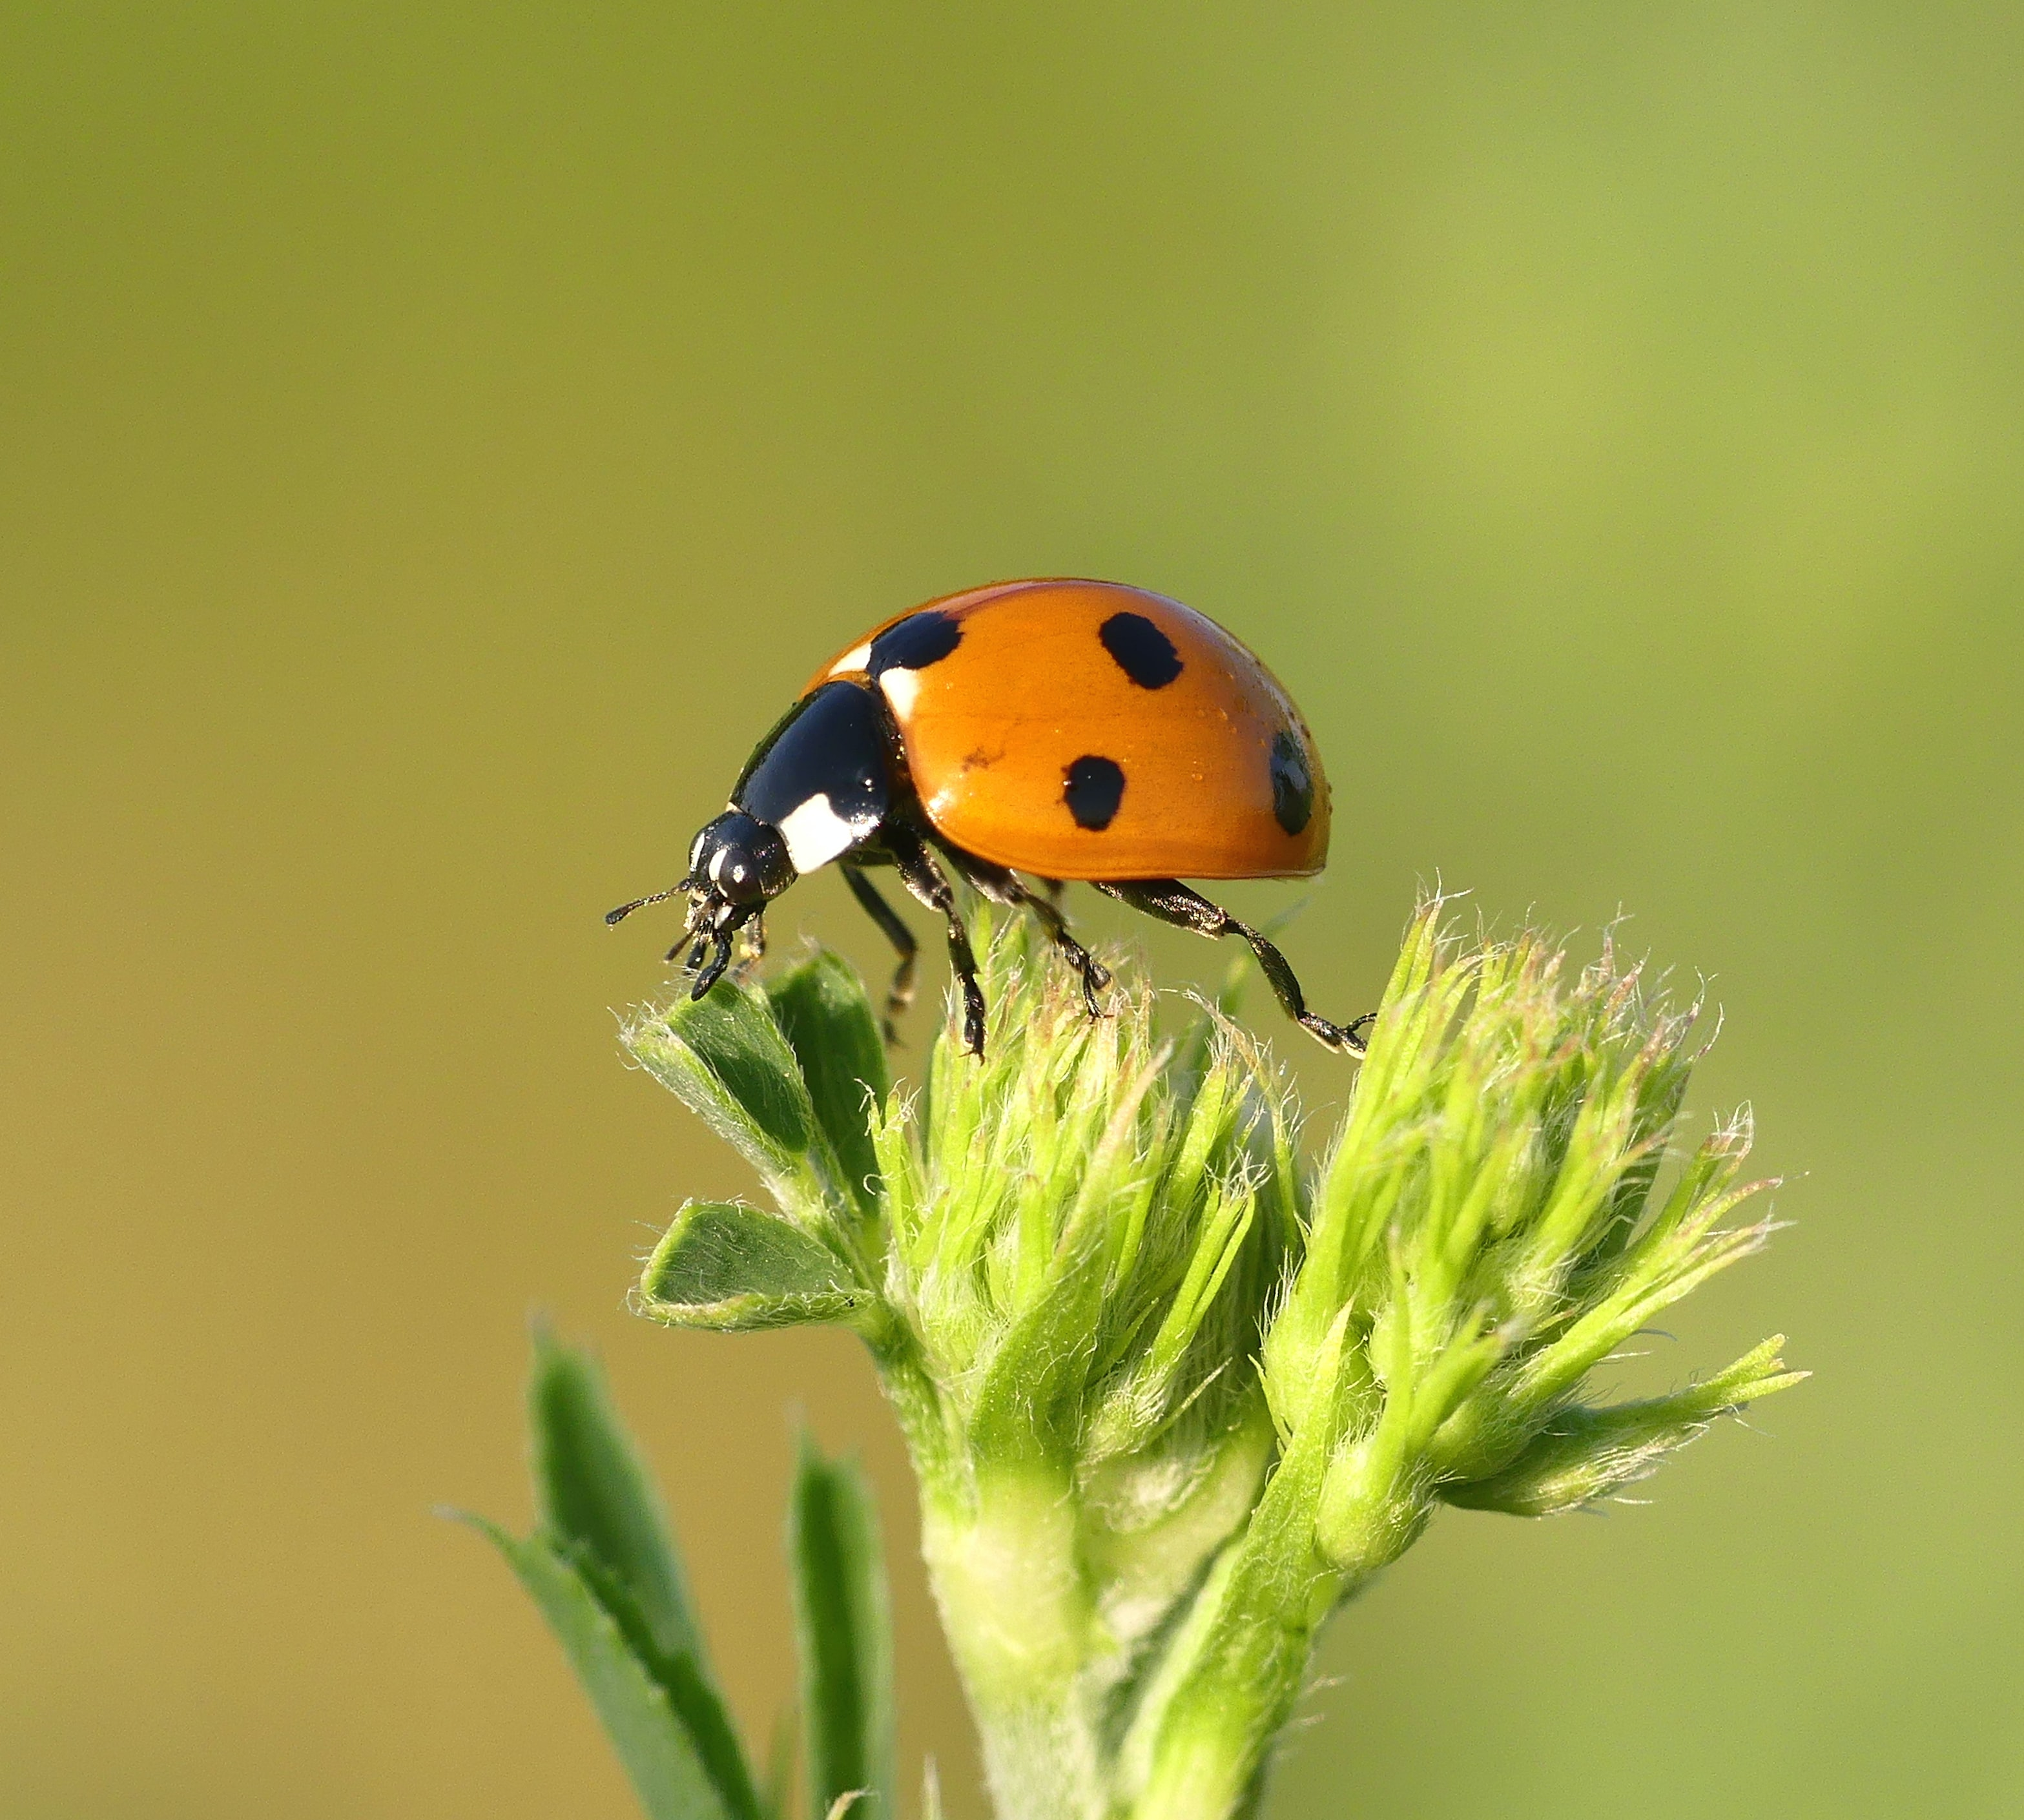 macro photography of orange and black bug perching on plant